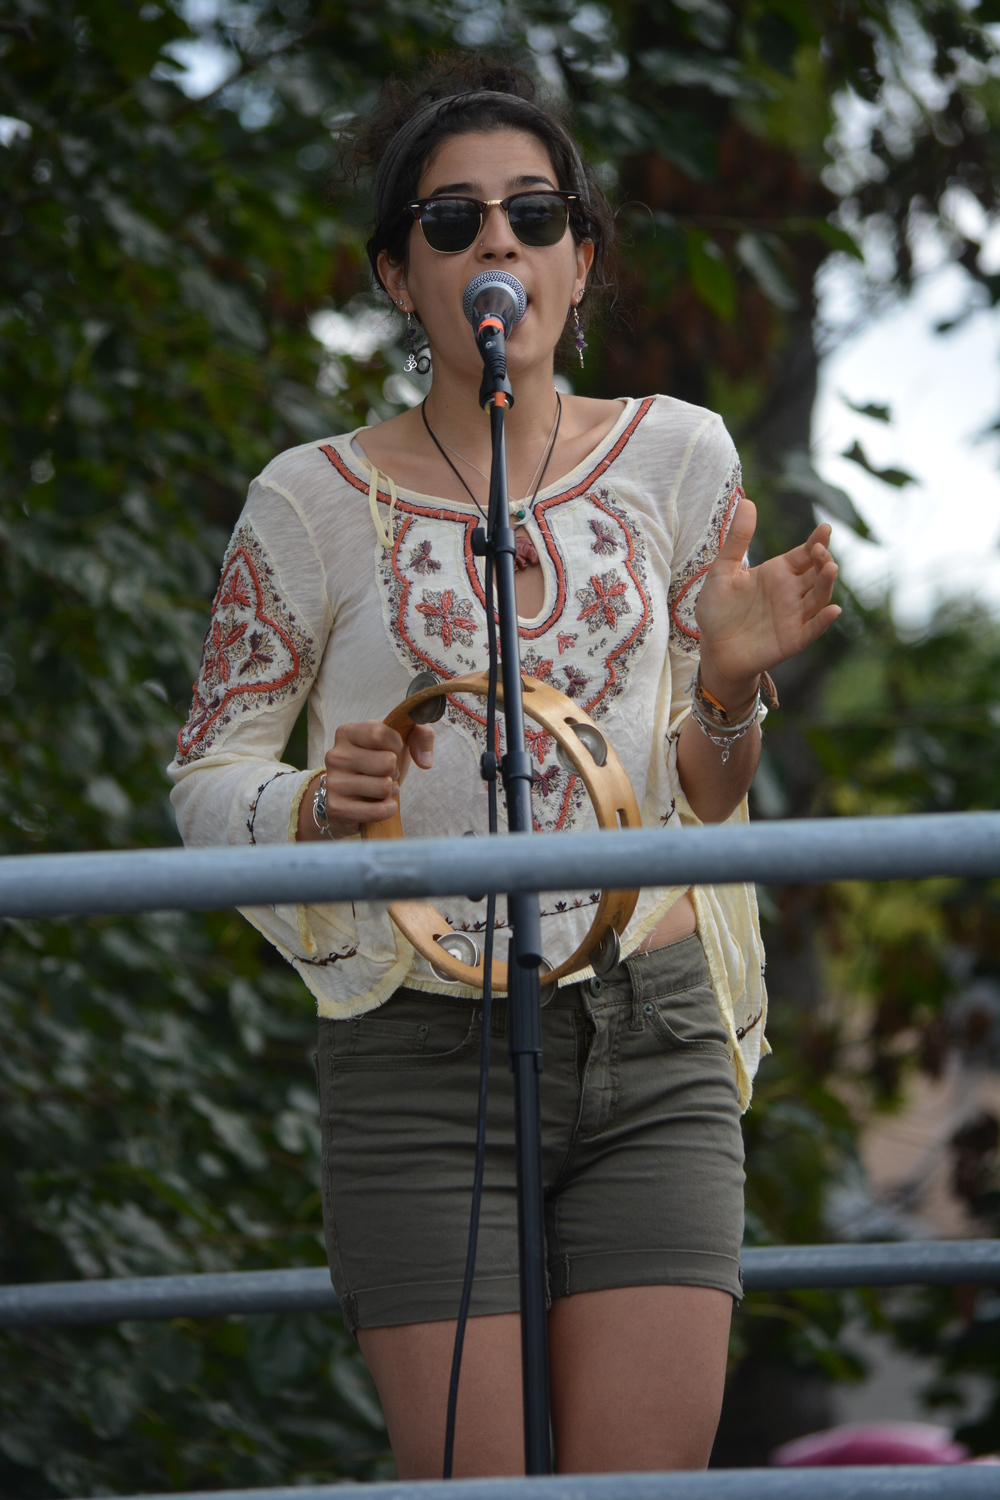 Stephanie Tolino sings for the band Motion Ocean.